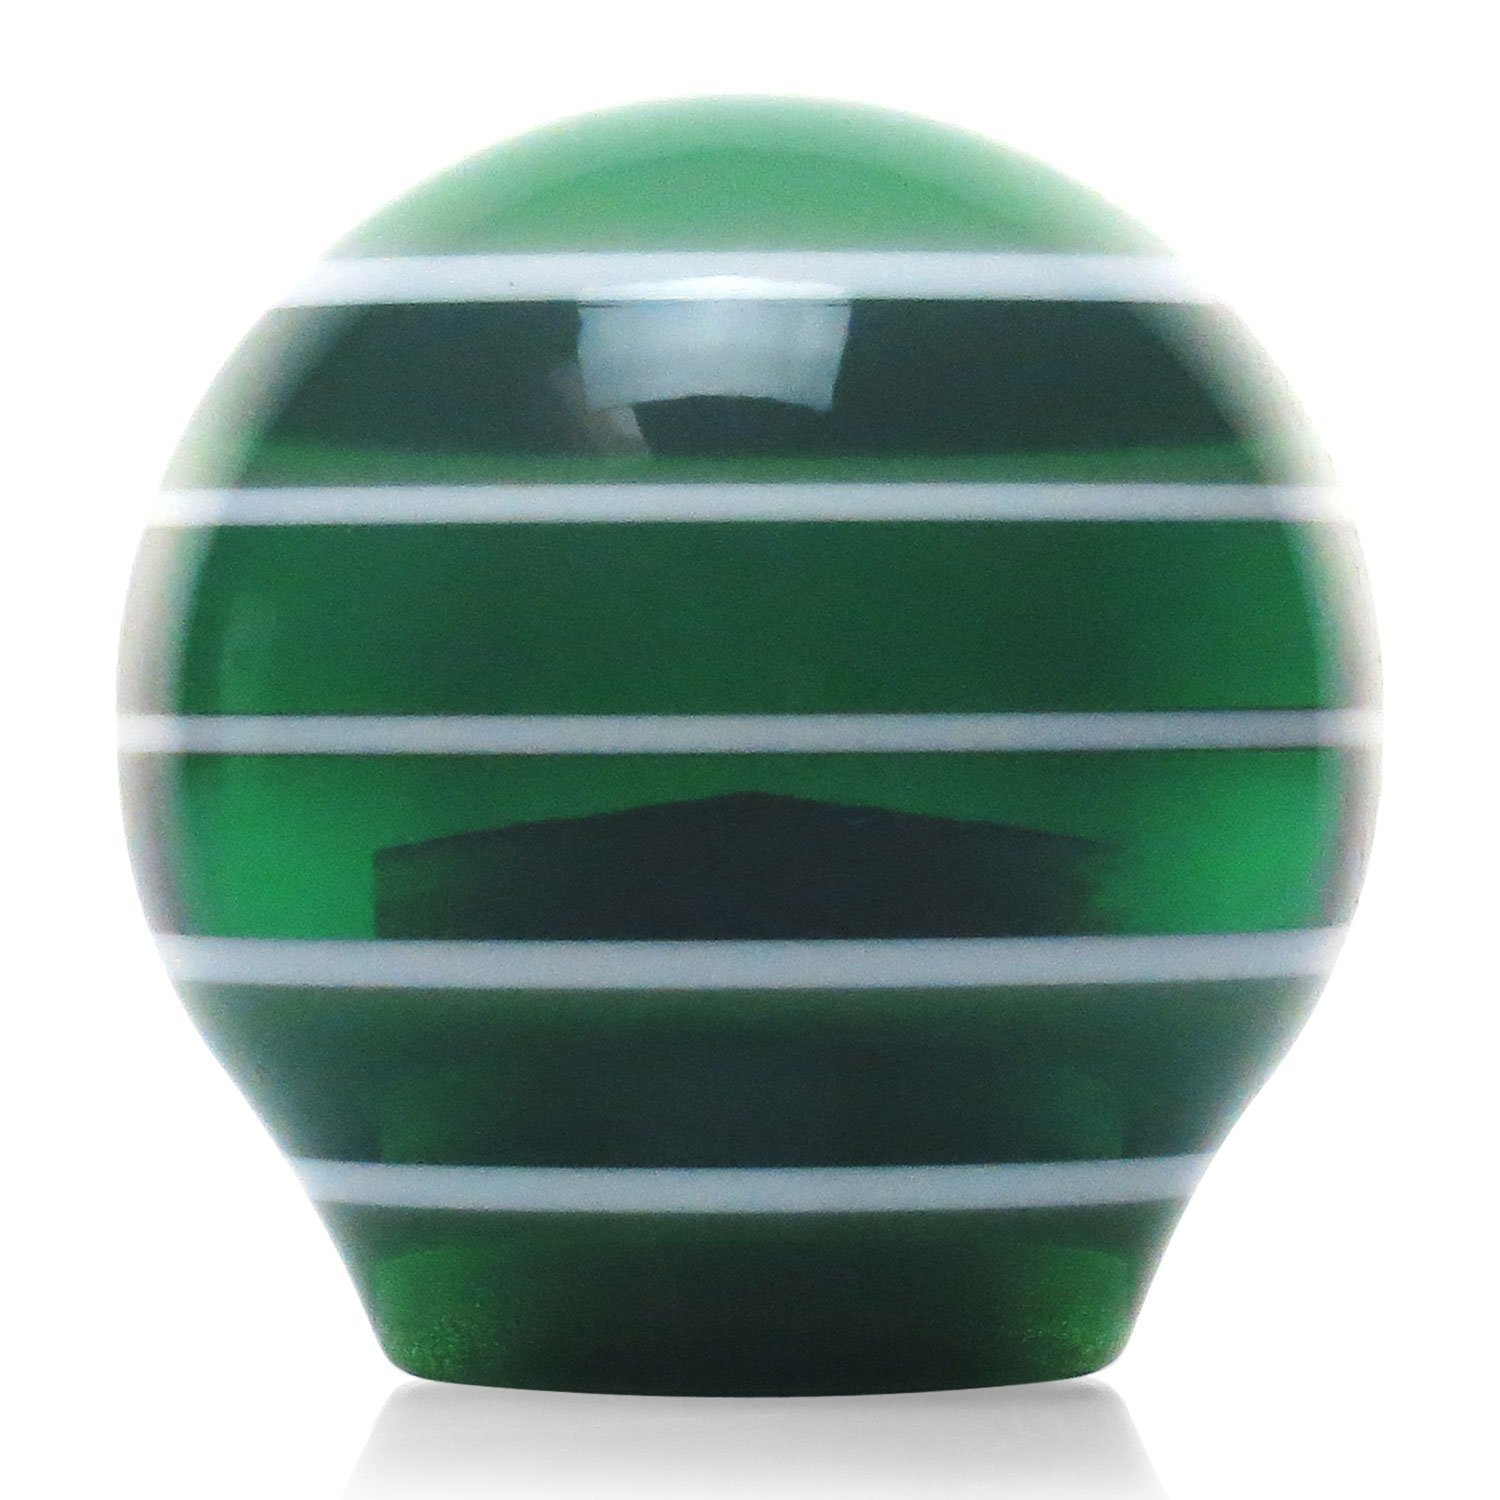 Green Curvy Road American Shifter 128598 Green Stripe Shift Knob with M16 x 1.5 Insert